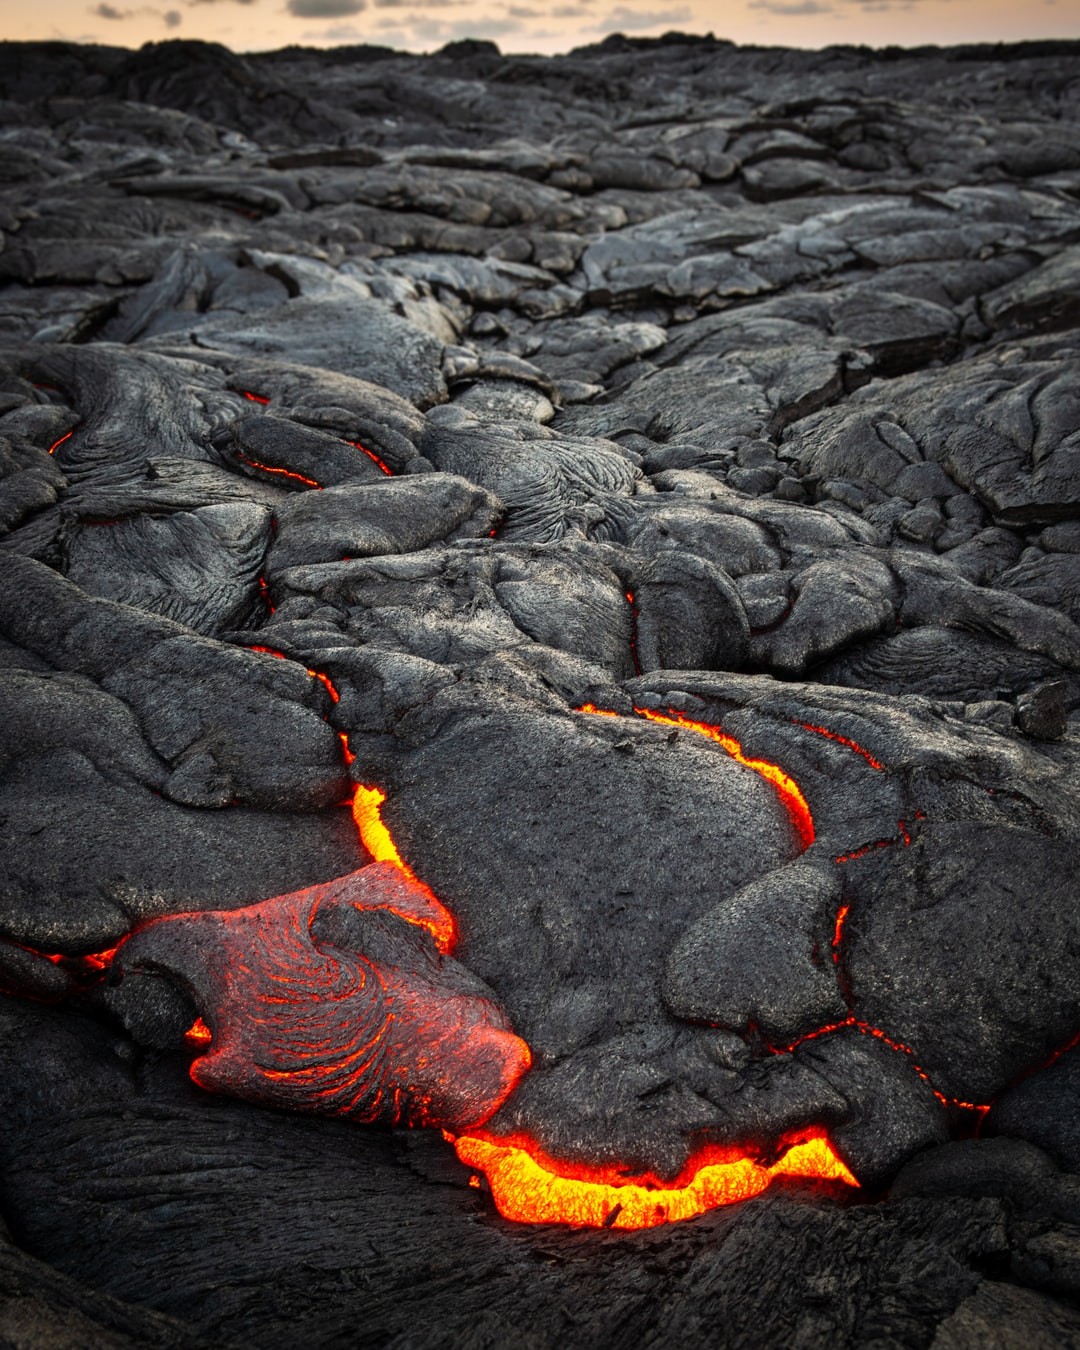 This was one of the most amazing things I've ever seen, and something everyone should try to see at least once. Seeing a lava flow up close is just so intense(literally, from the heat) and awe inspiring. My two oldest sons and I had decided to bike out to see the lava flows on Hawaii's big island last year along with the lava hose going into the ocean. The lava hose flow had slowed down quite a bit and from the distance they had roped off, you could mostly just see steam. We decided to hike into the lava field to the north, in hopes of finding some of the smaller magma flows on the surface.